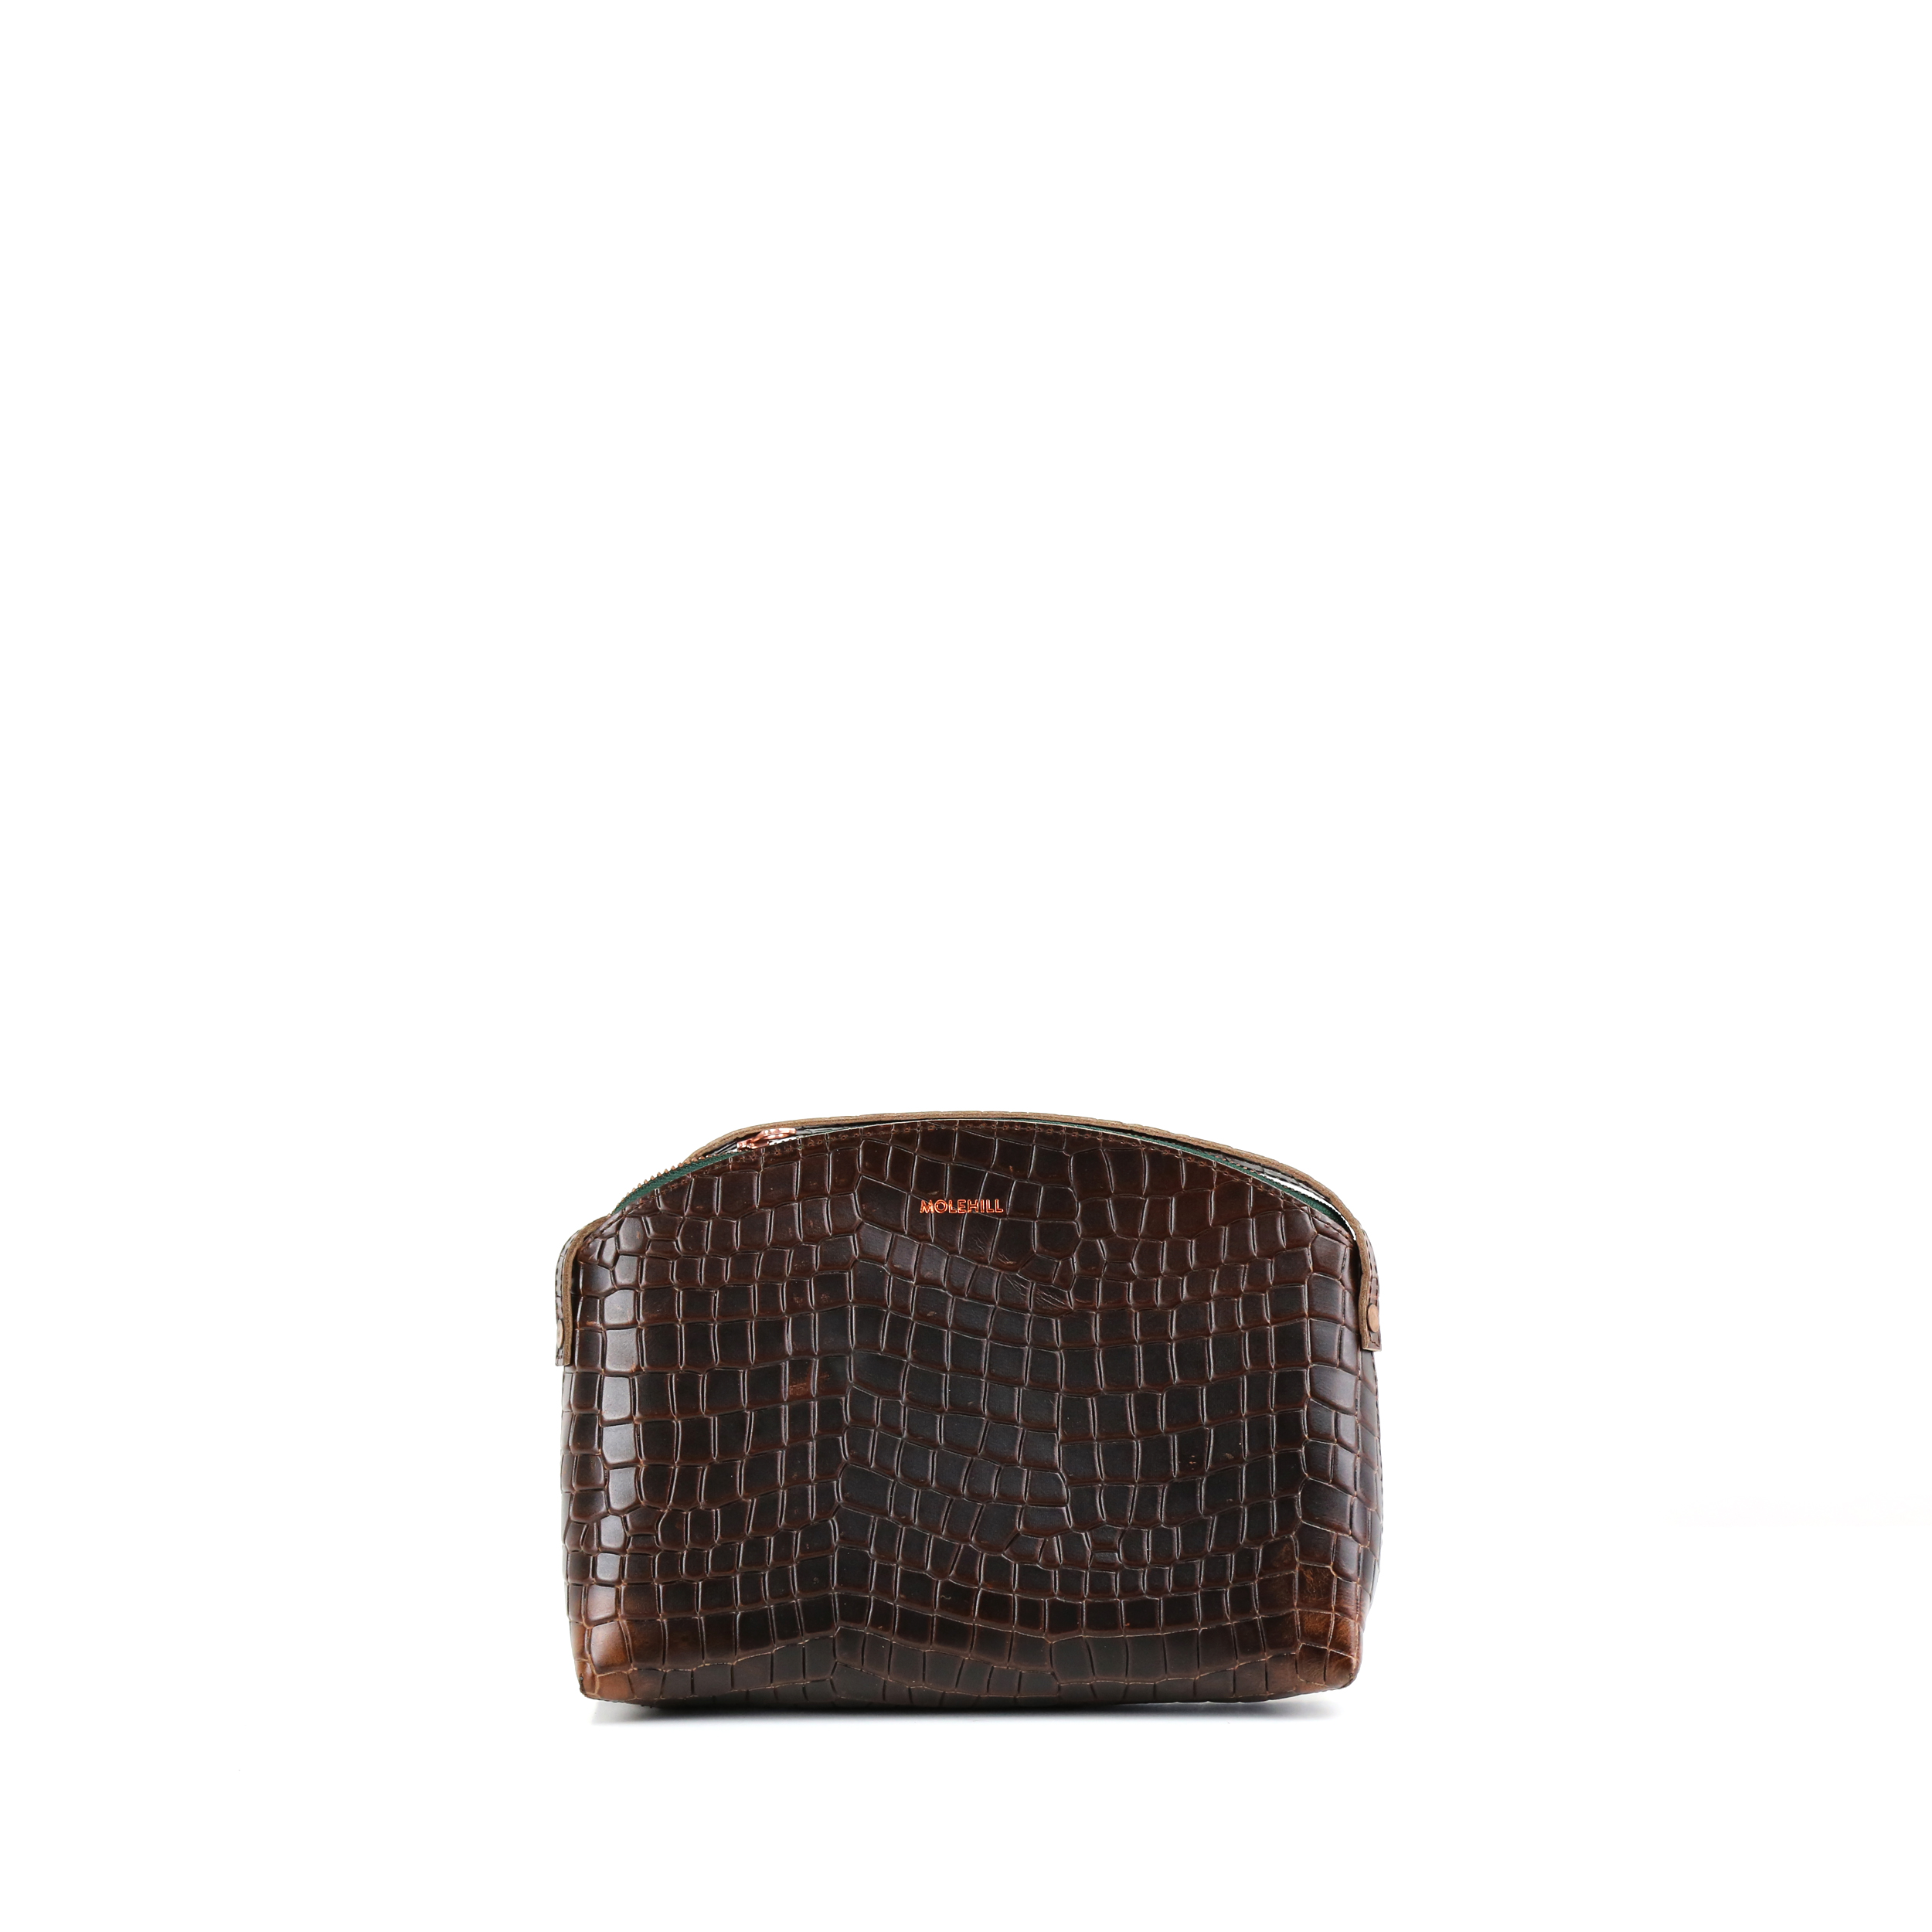 TIMI Crossbody Bag Croco Sample Sale No. 1-1